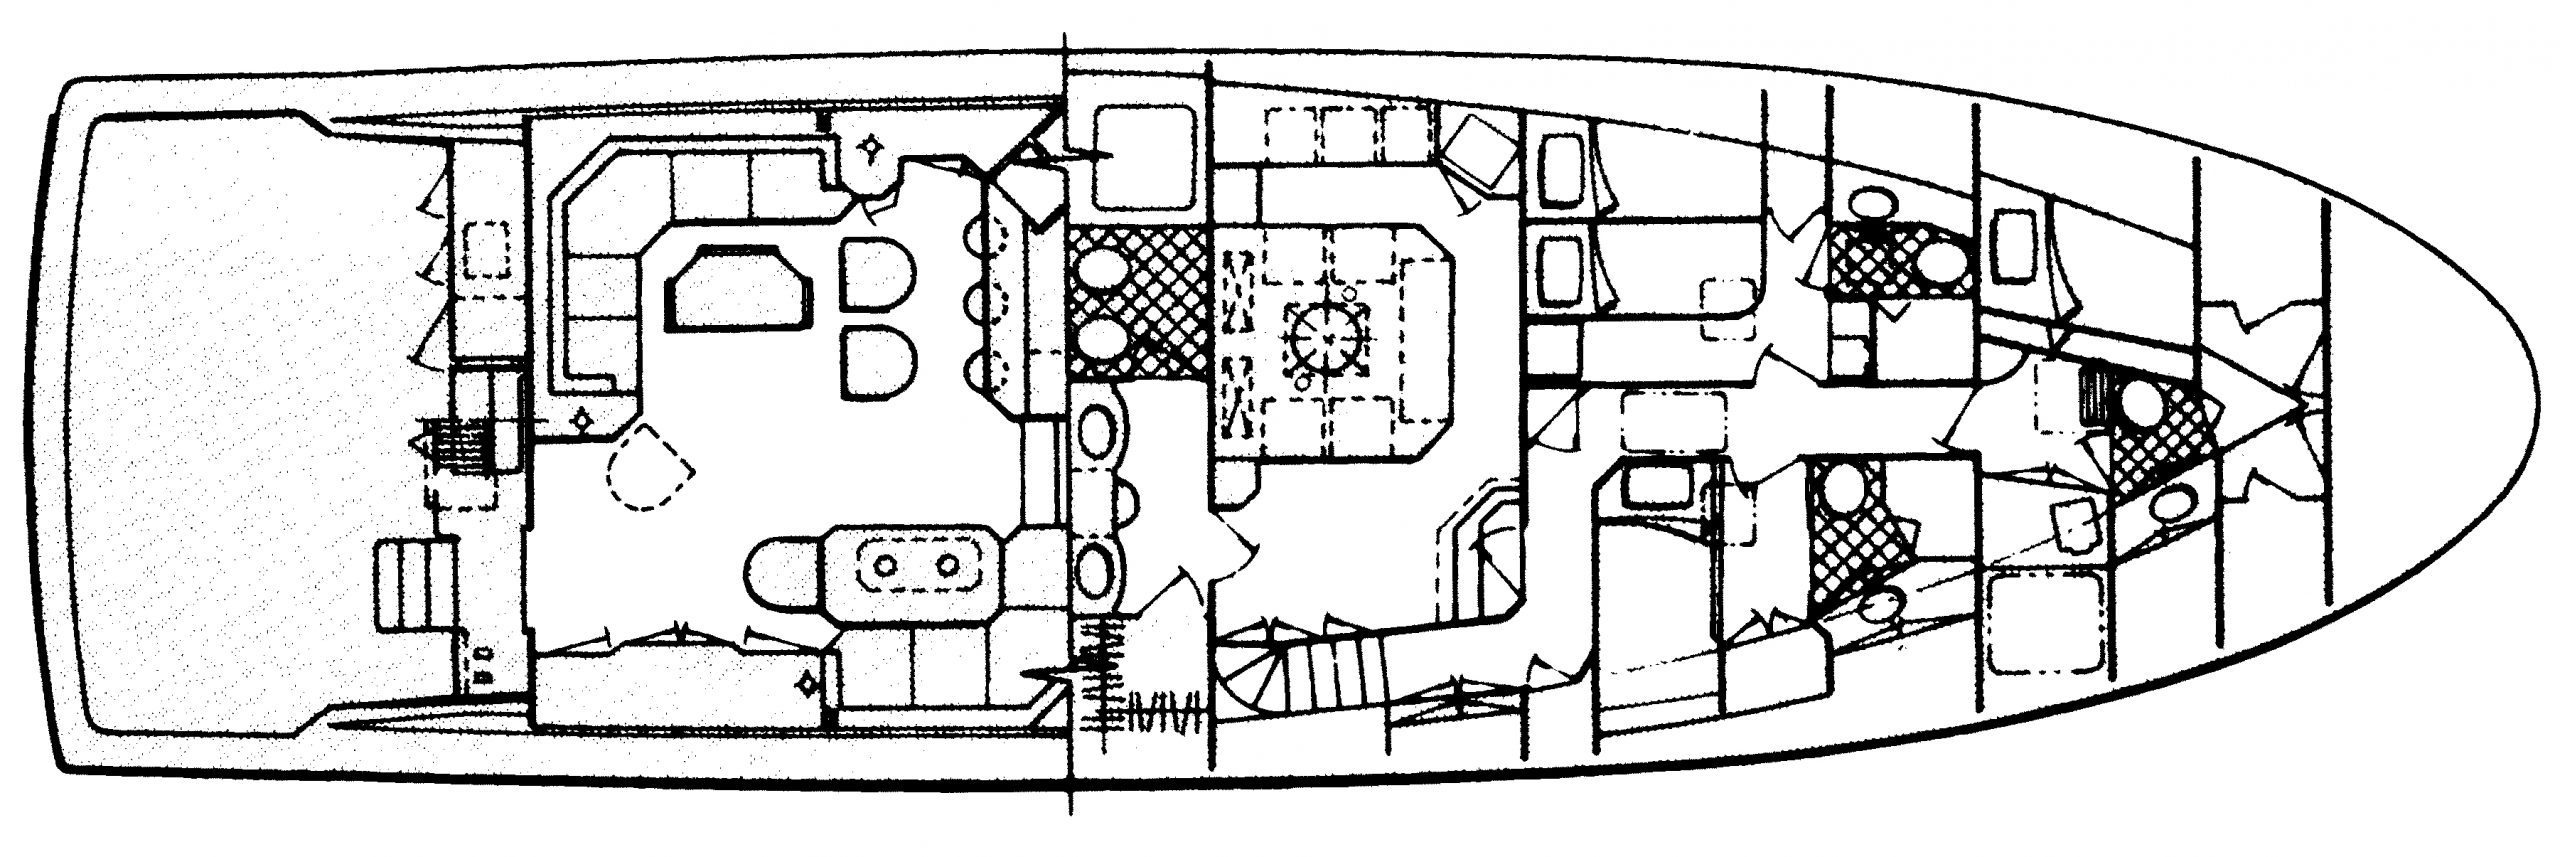 70 Sportfisherman Floor Plan 2